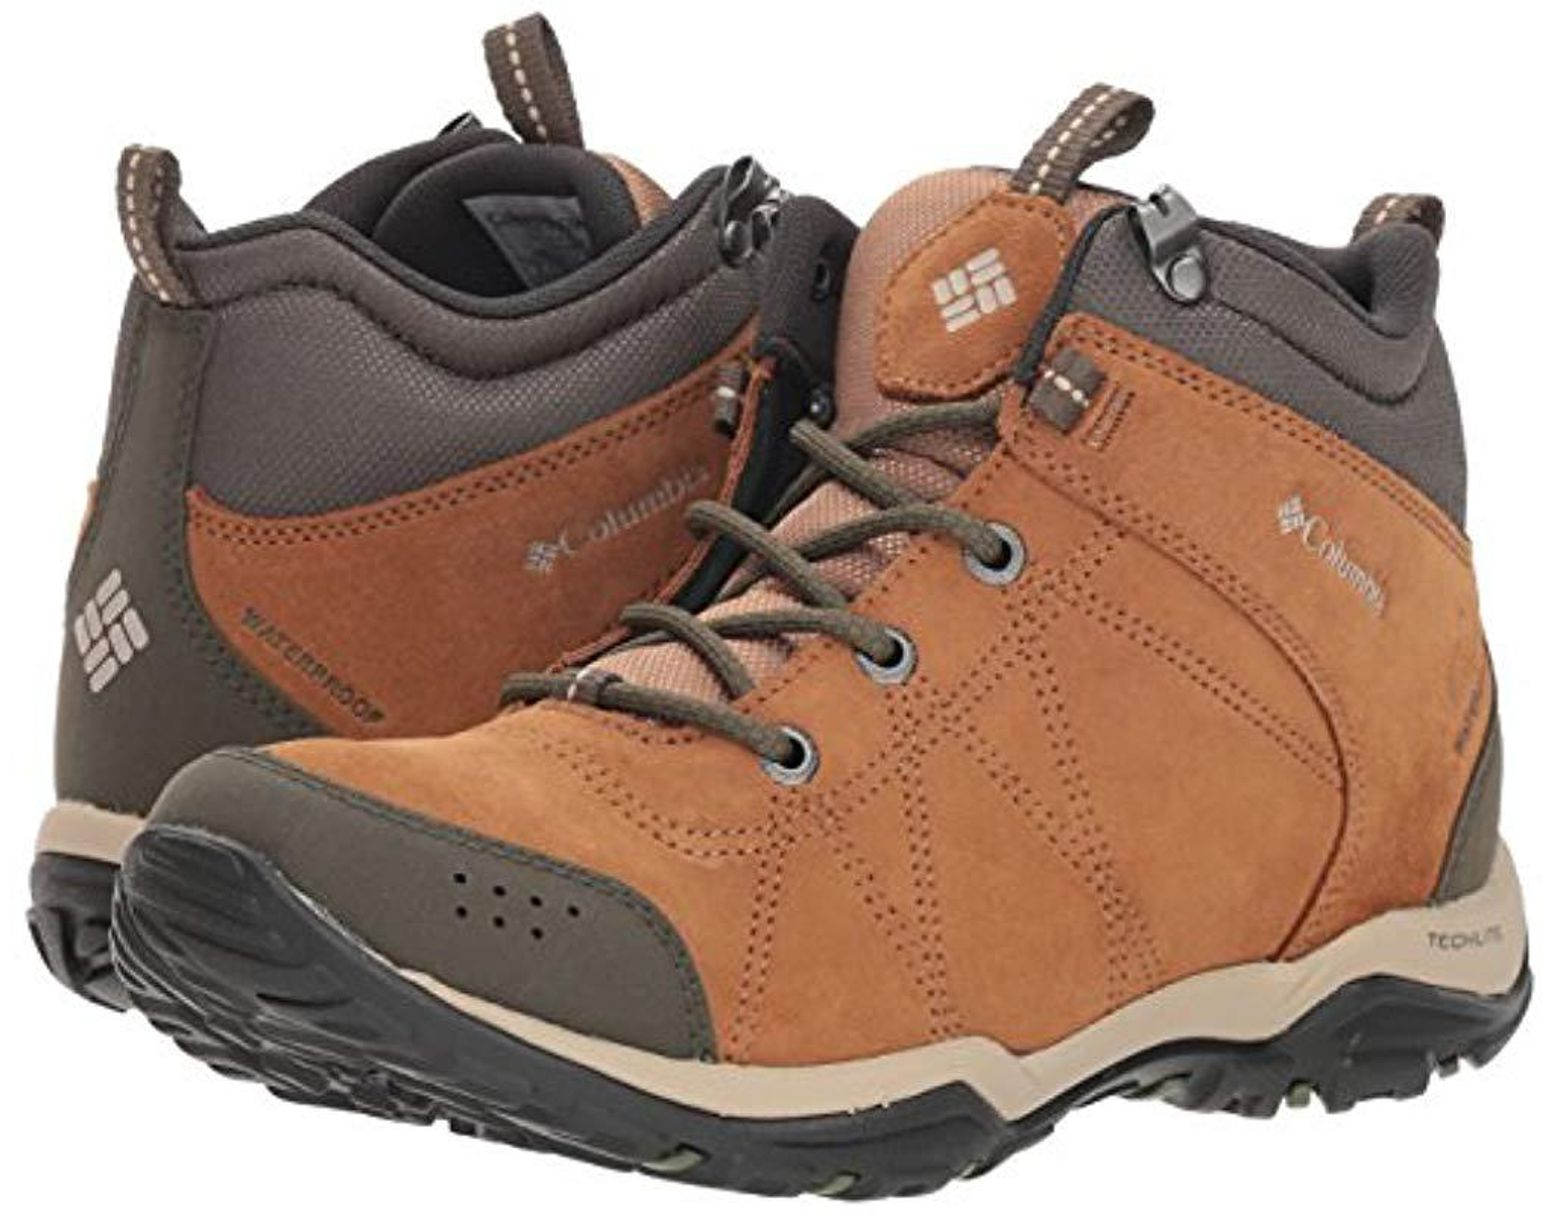 6126e762230 Columbia Fire Venture Mid Suede Waterproof Hiking Boot in Brown ...